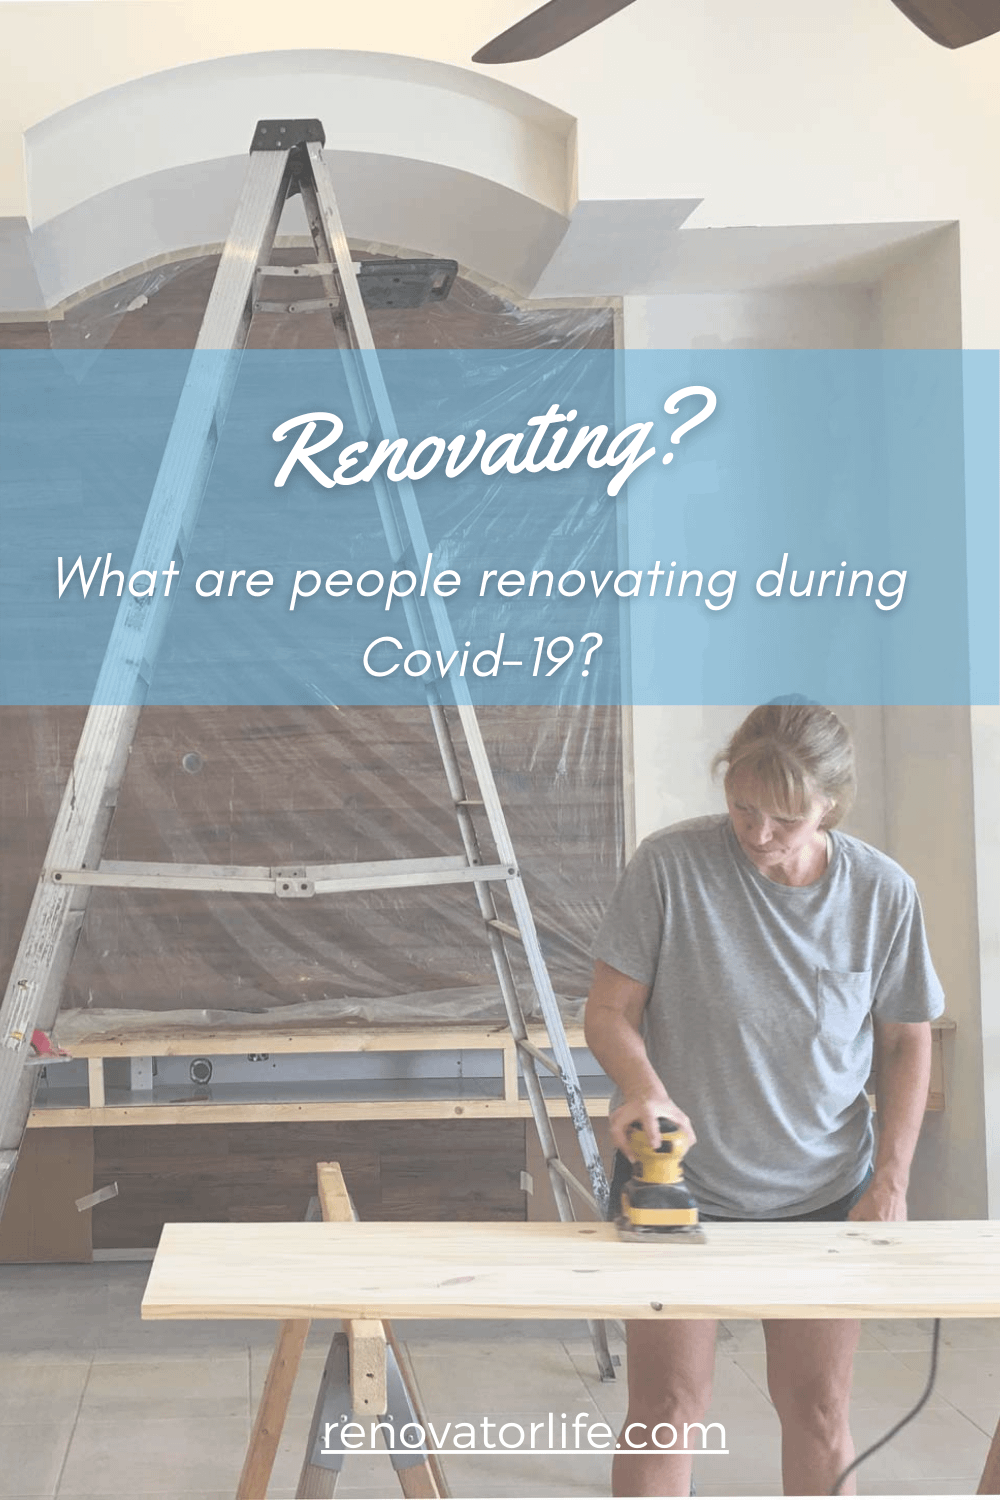 What are people renovating during Covid-19